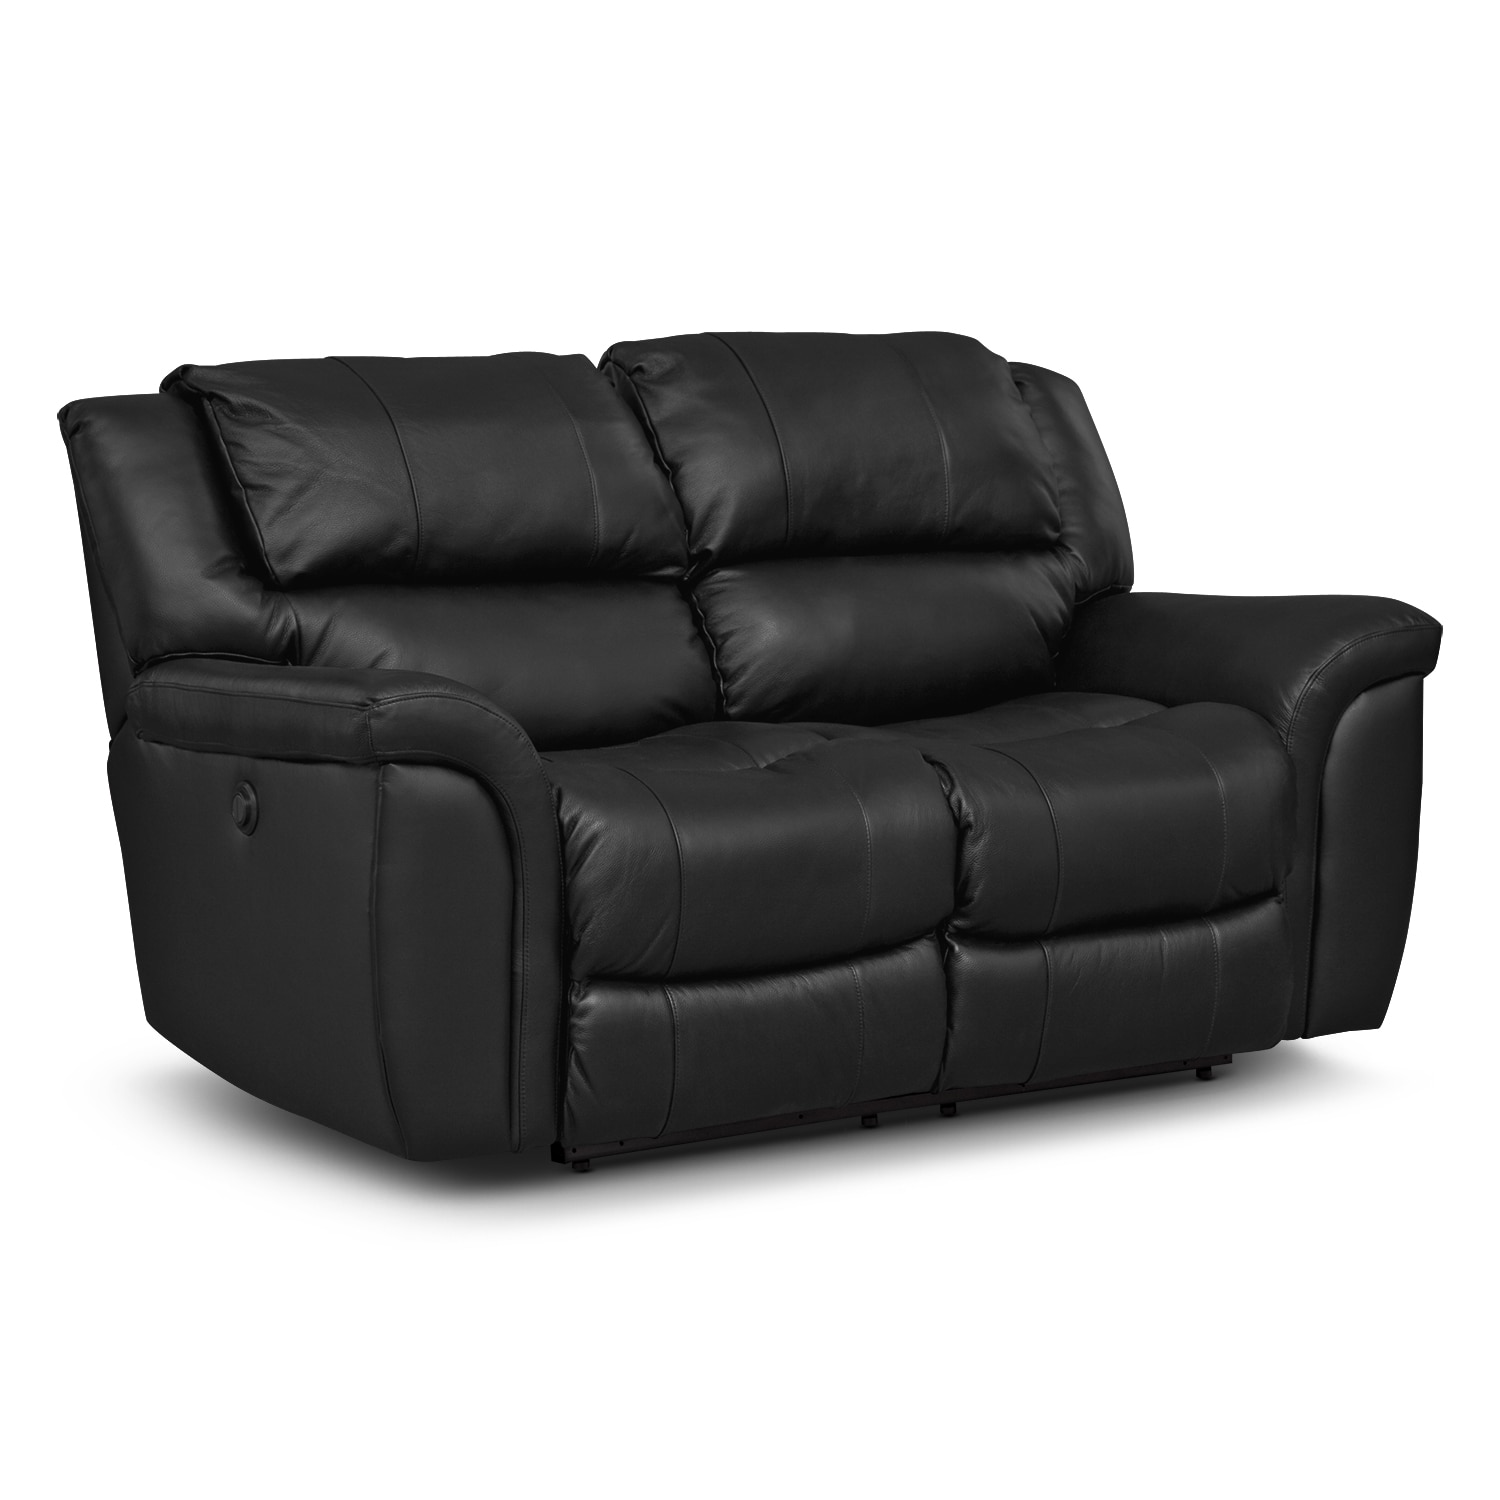 Living Room Furniture - Aquarius III Dual Power Reclining Loveseat